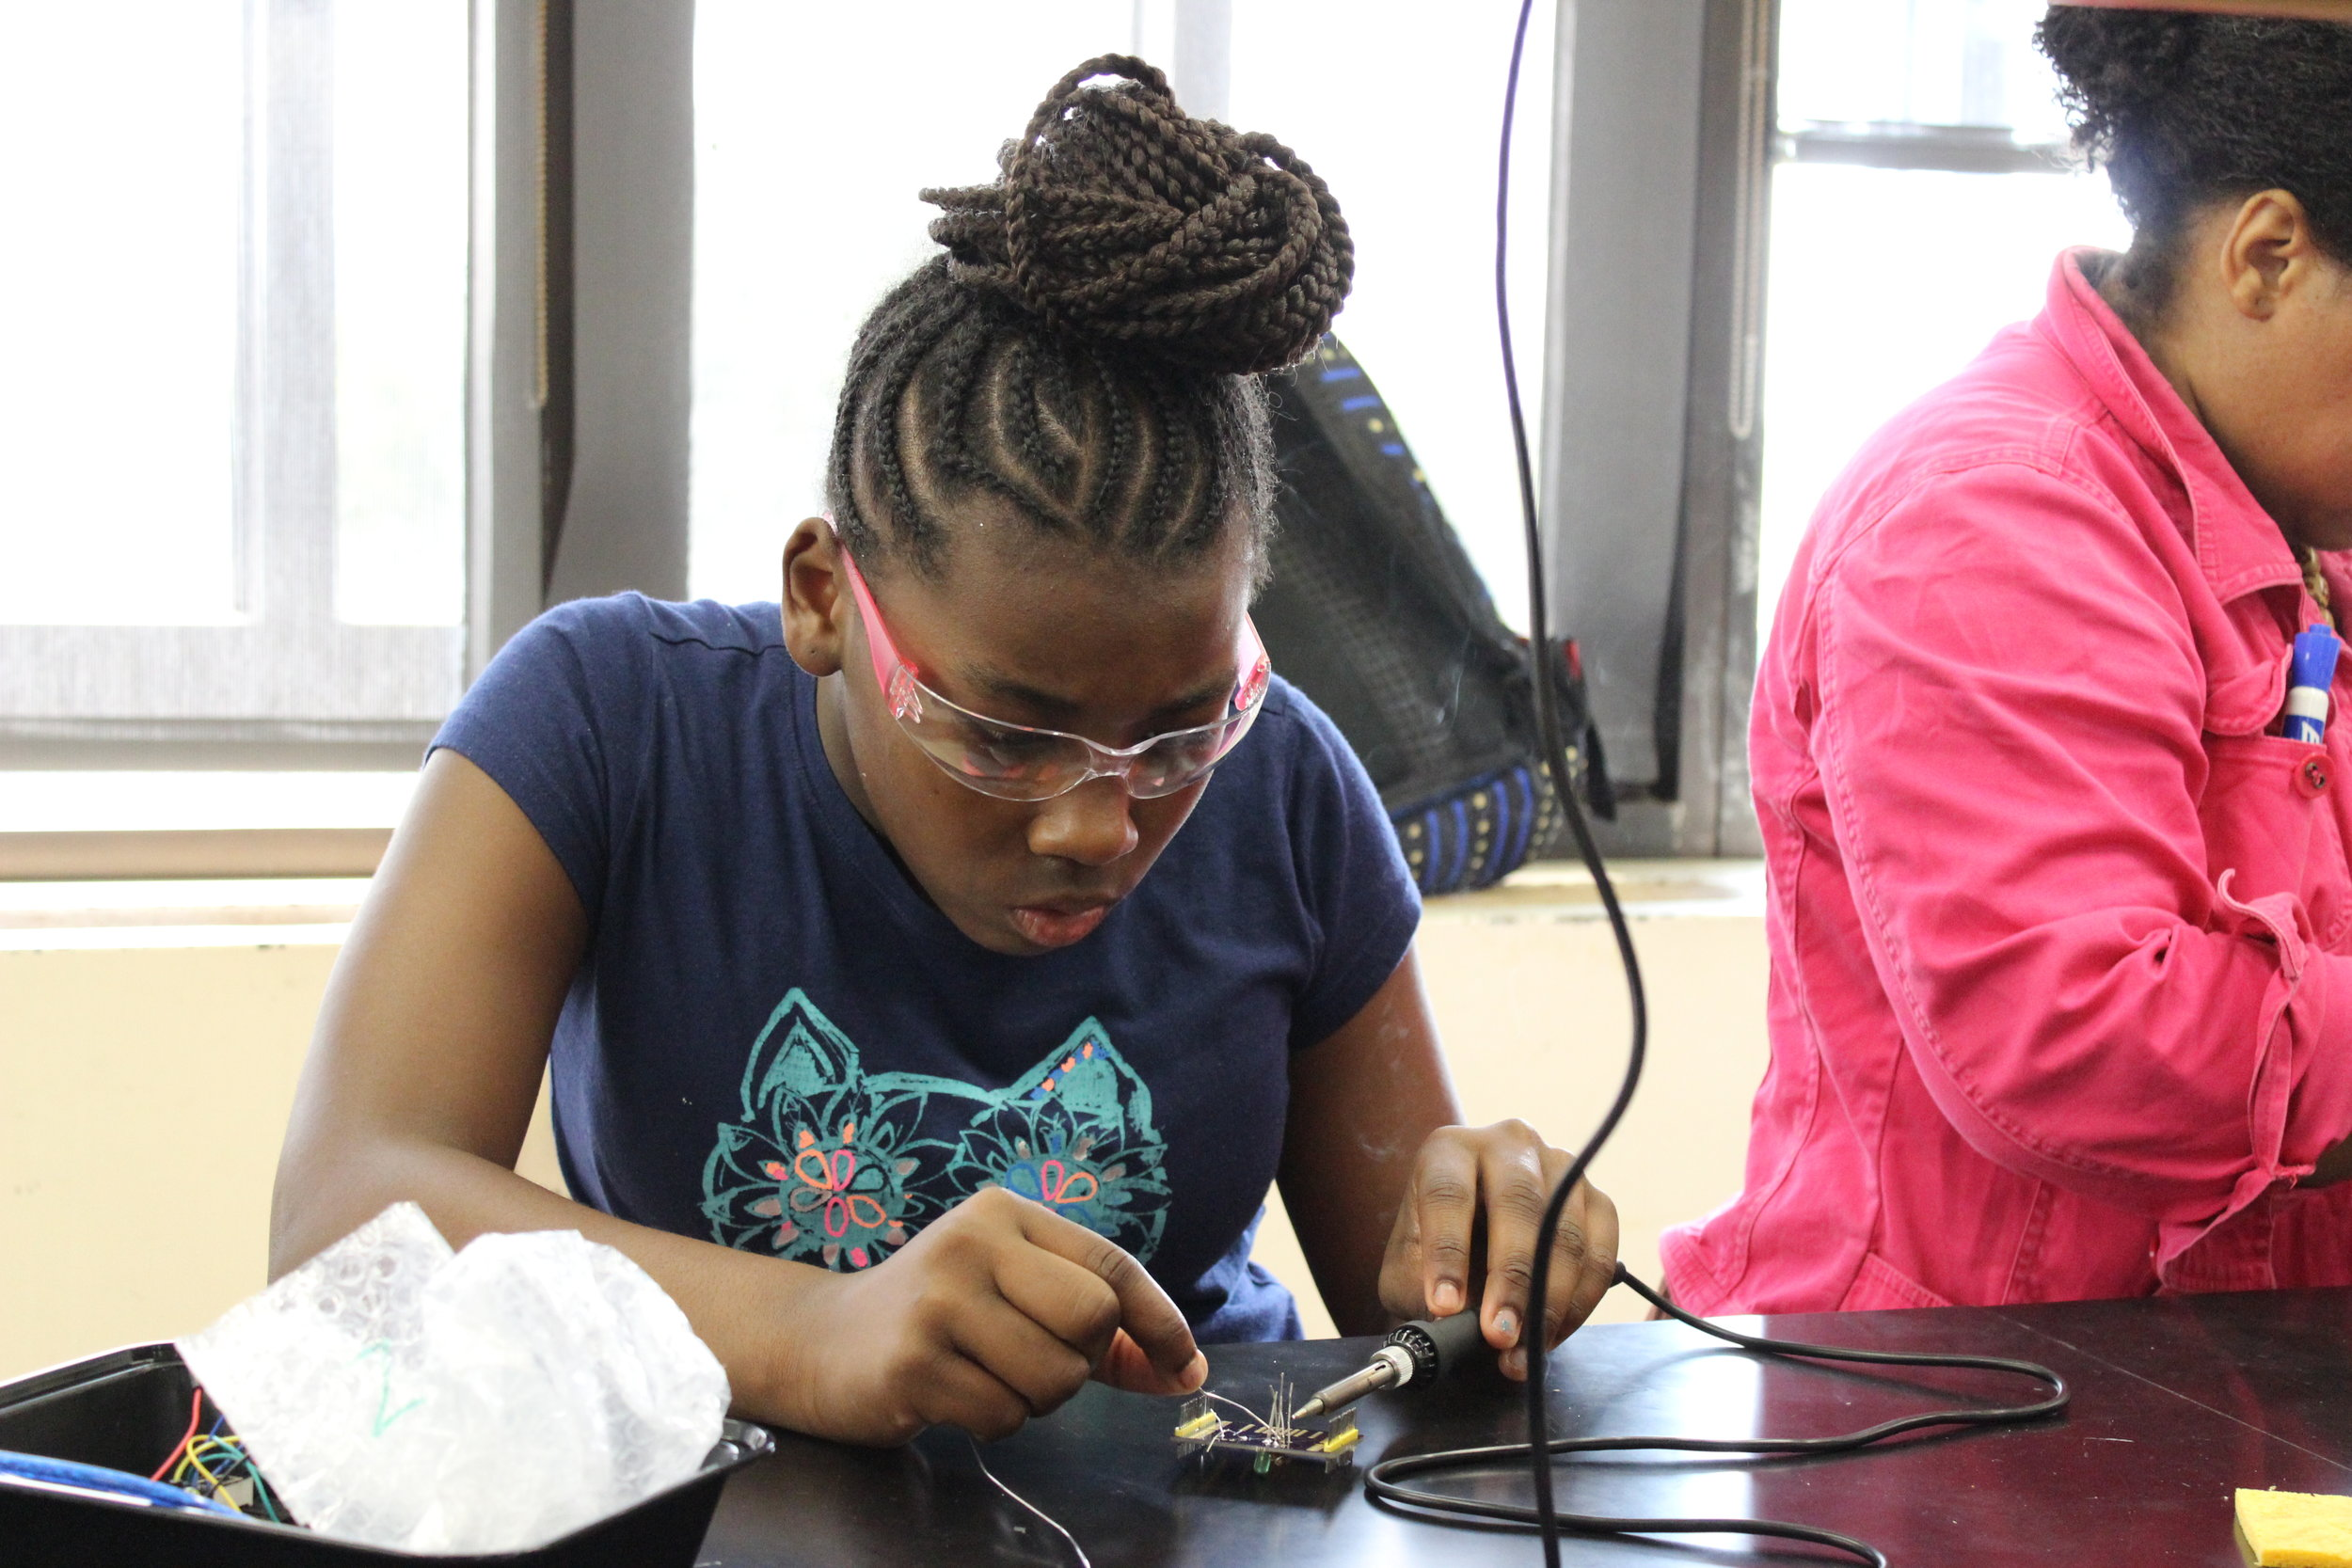 Zanahya, a rising 7th grader, learns to solder at BEAM 6 in 2018. Aisha, who learned to solder at BEAM 7 five years earlier was the teaching assistant for this course.